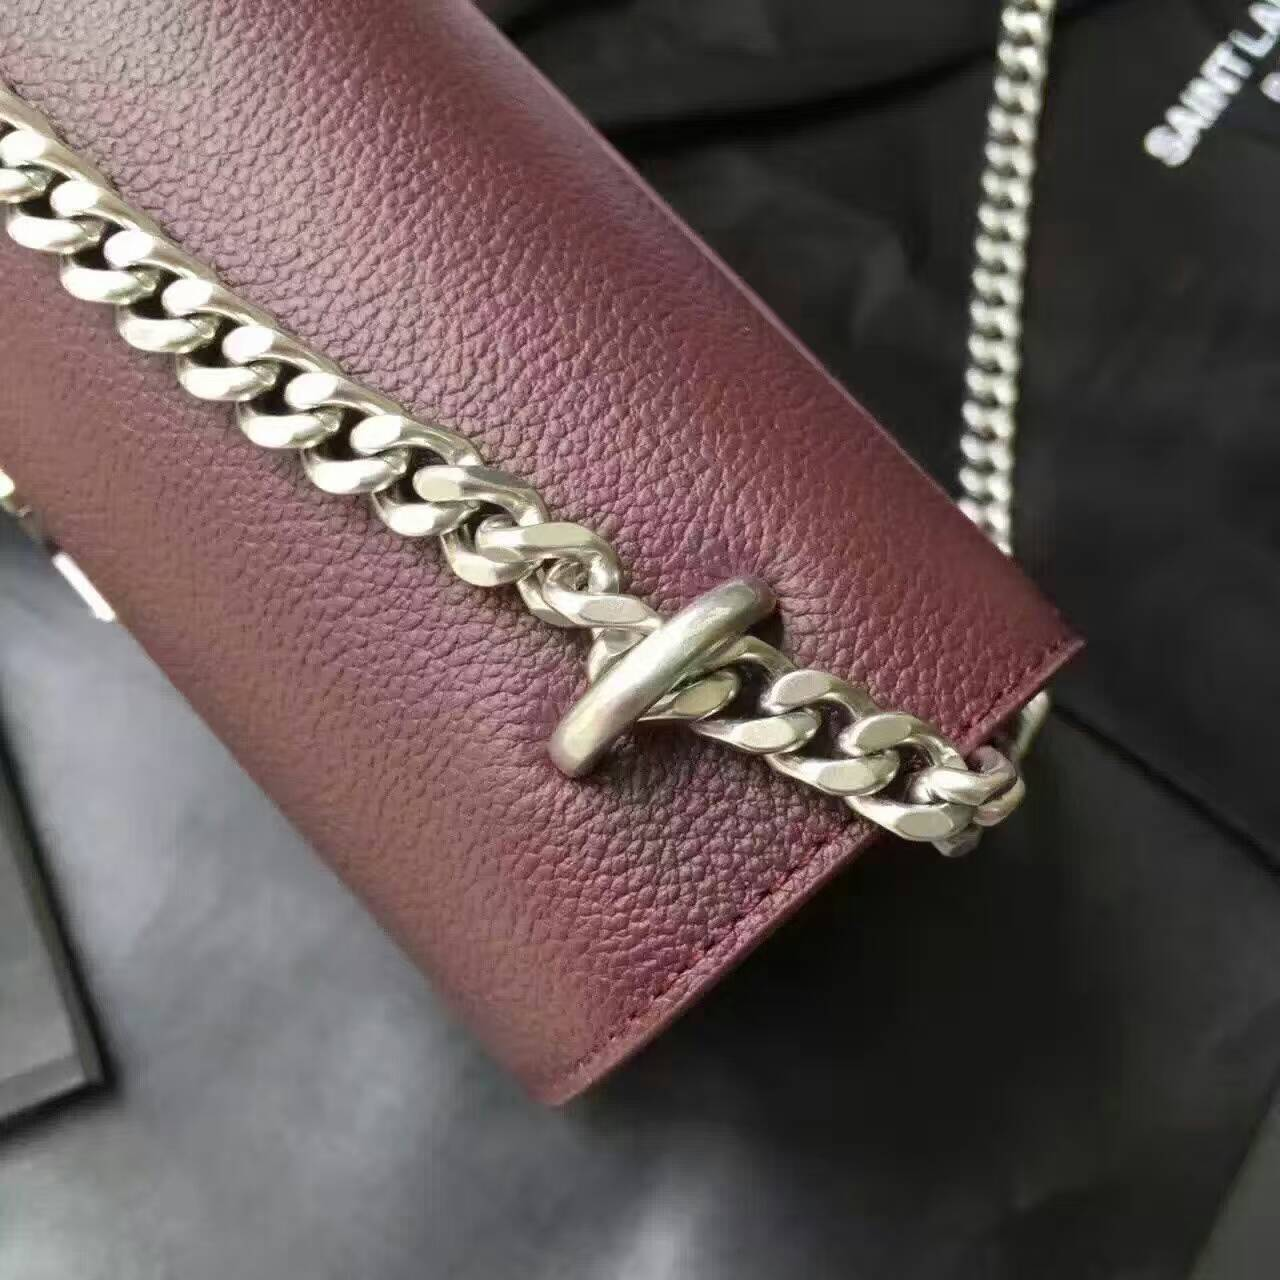 Limited Edition!2016 Saint Laurent Bags Cheap Sale-Saint Laurent Medium Sunset Monogram Bag in Bordeaux Grained Leather